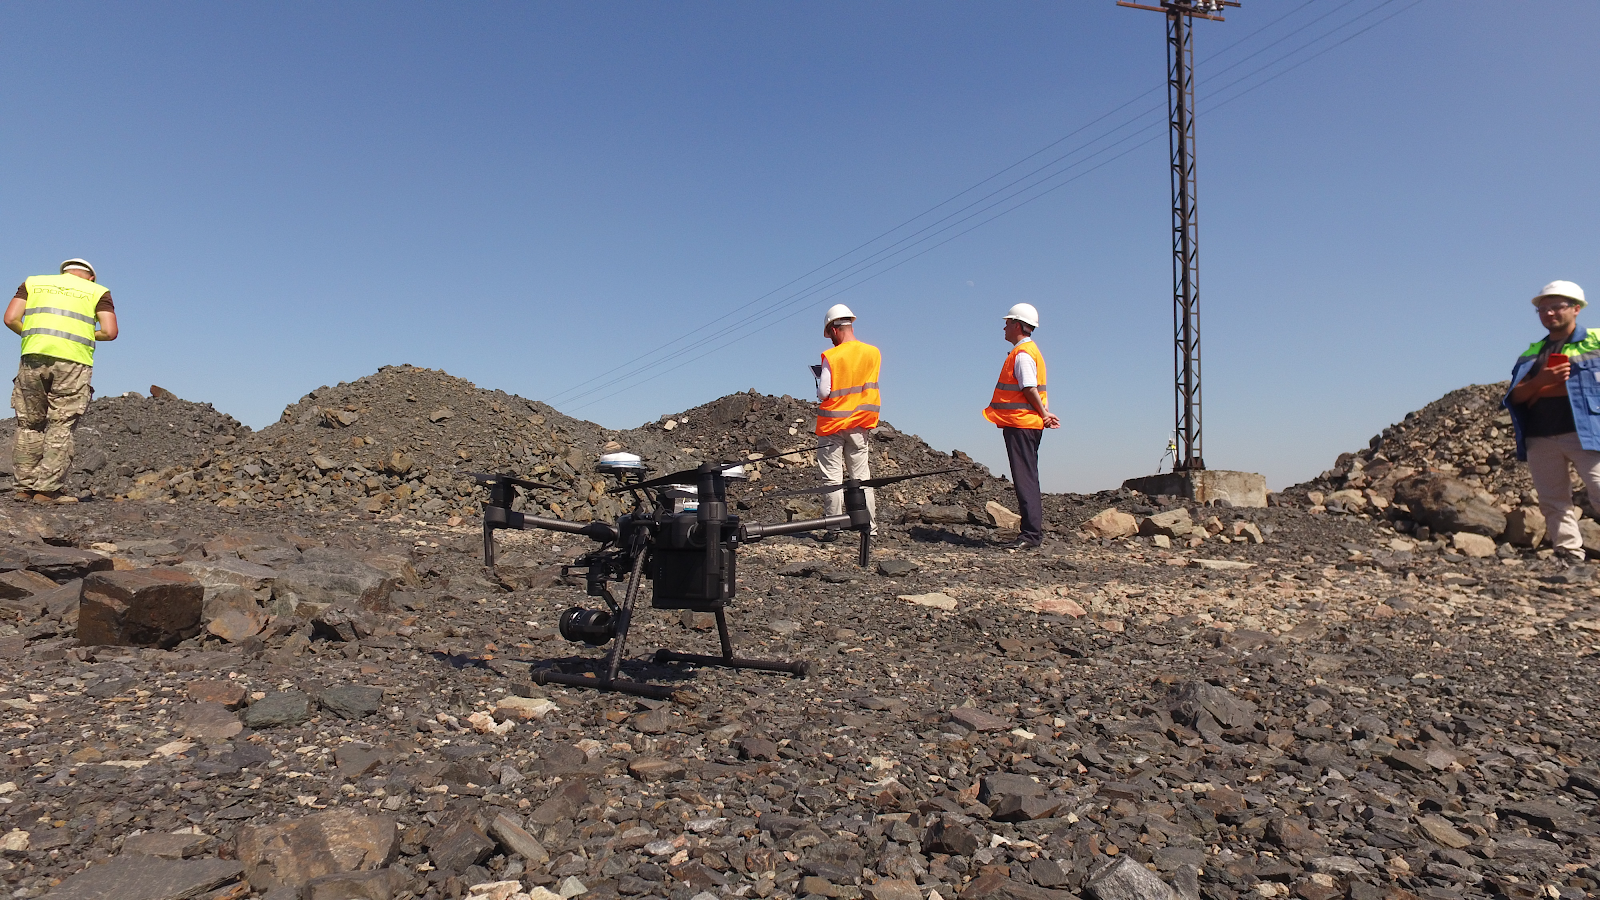 Launching a Matrice drone from a quarry